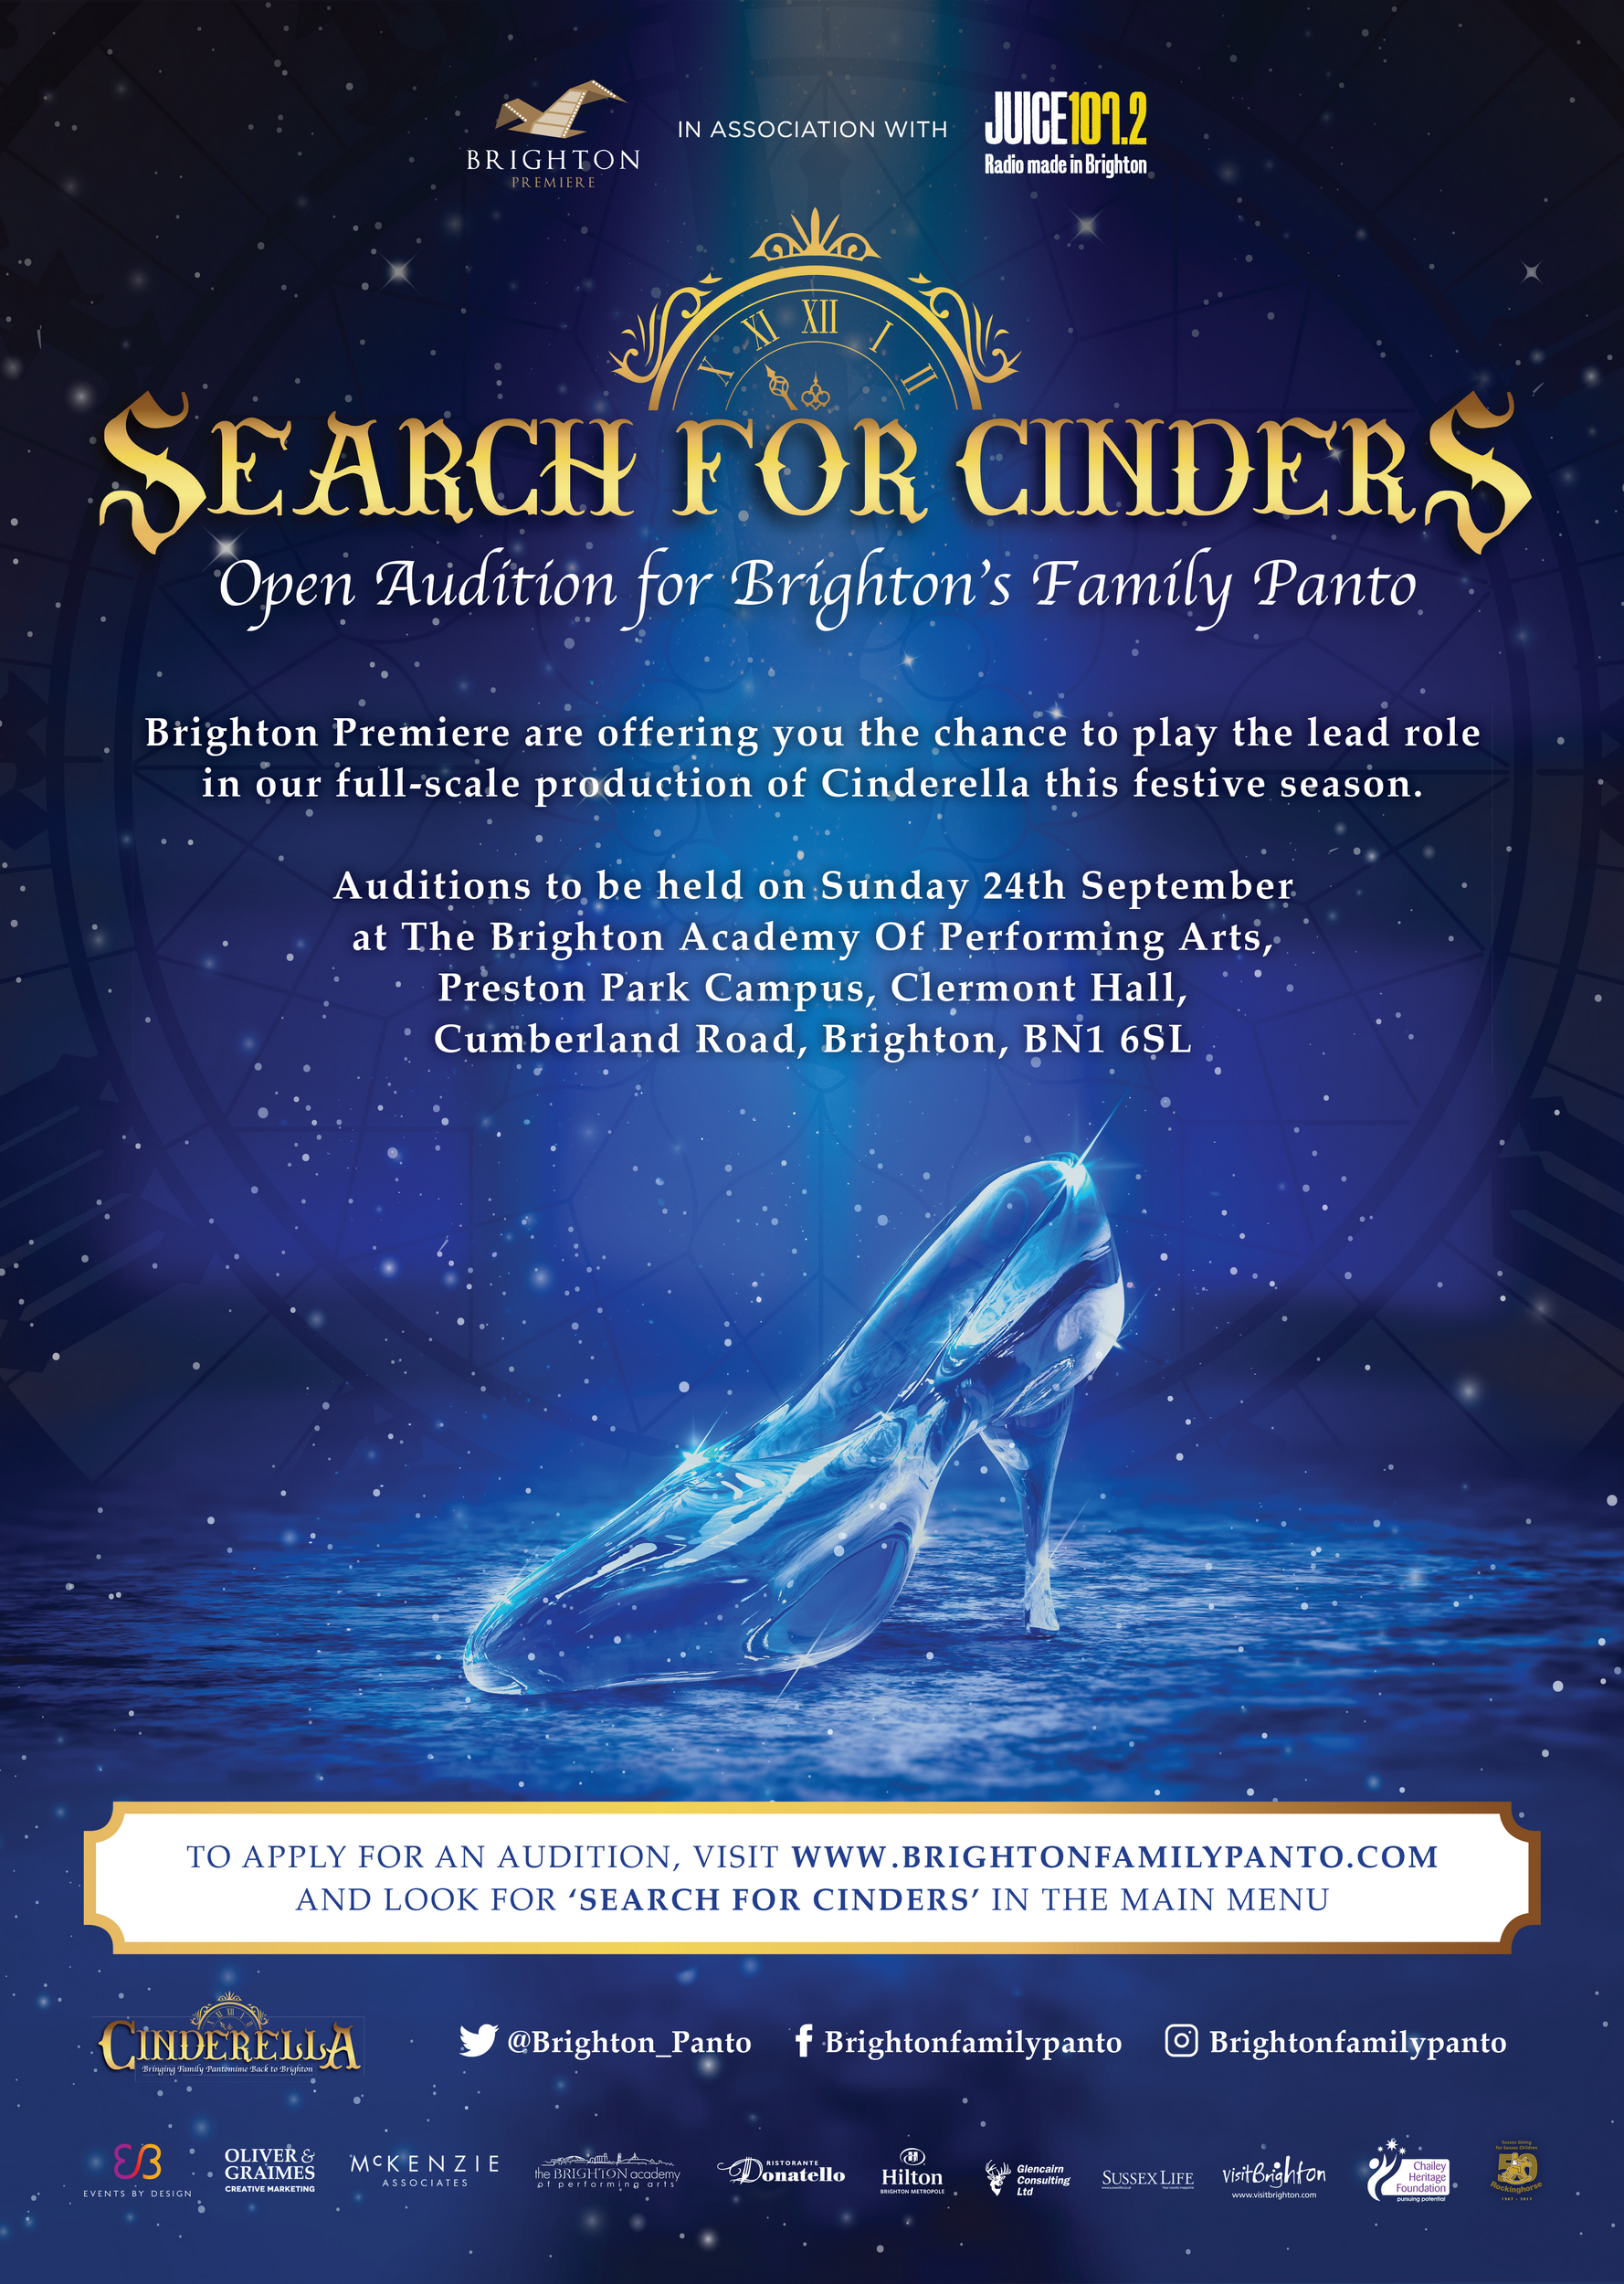 Search for Cinders